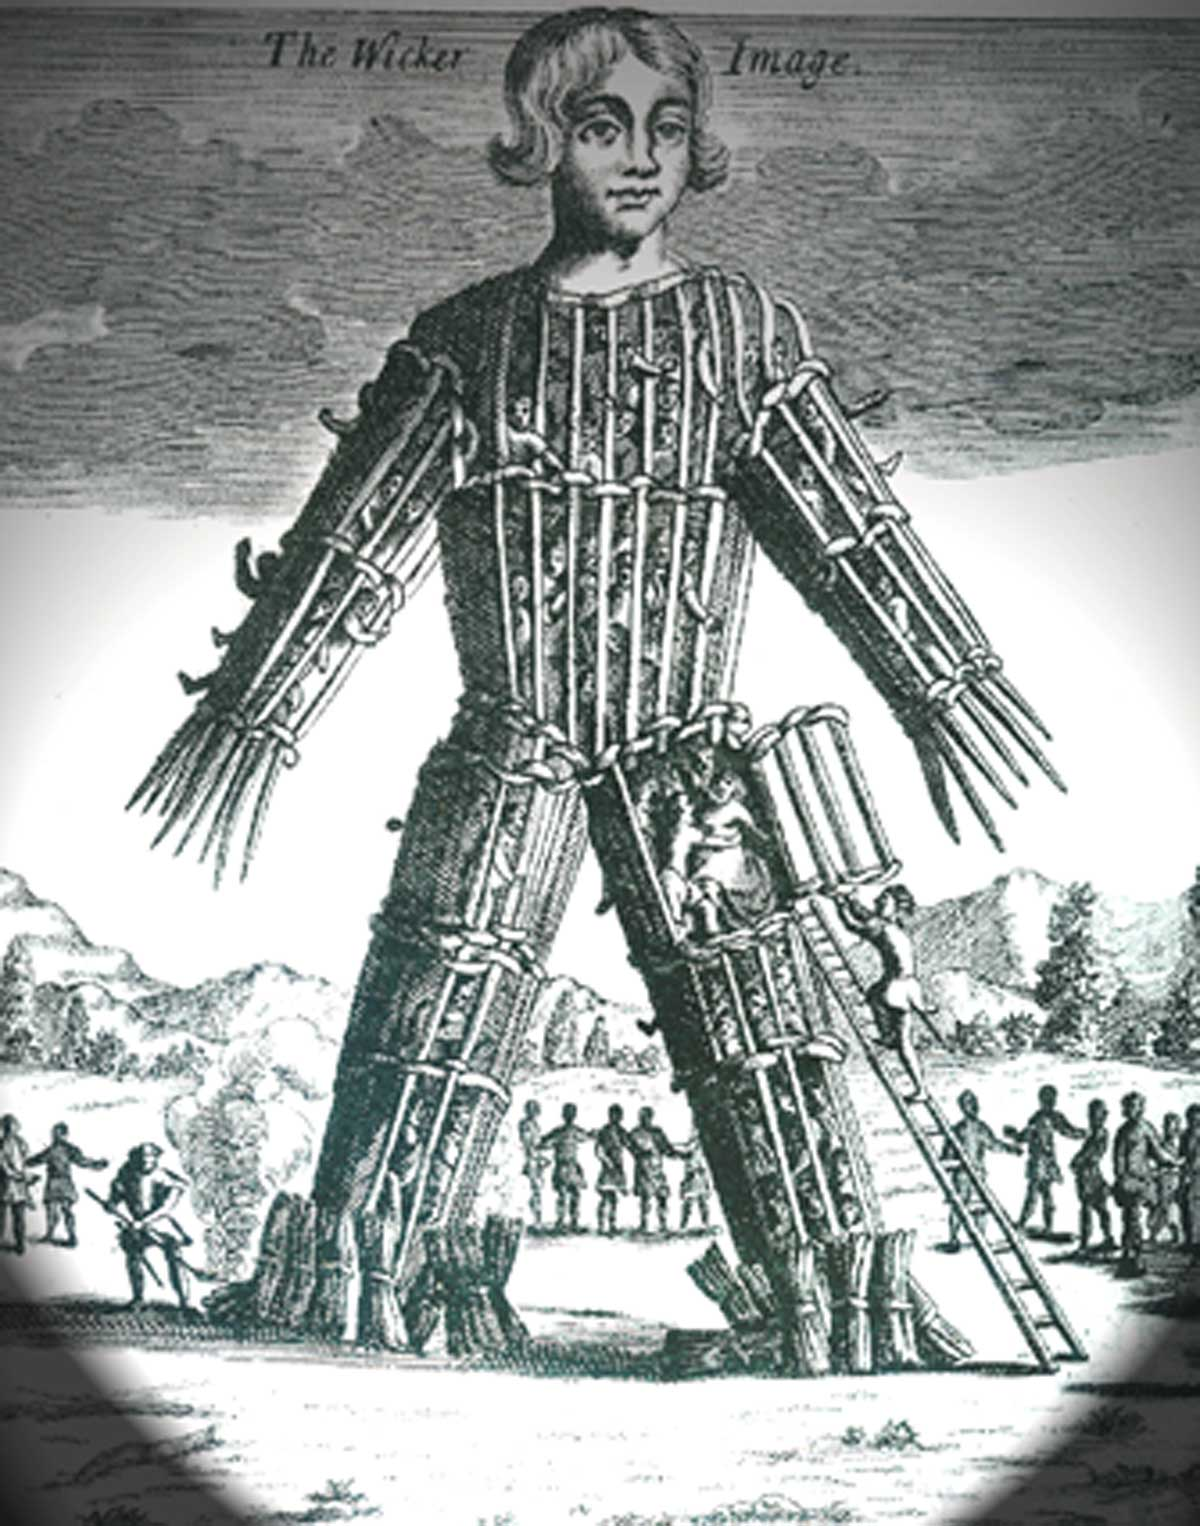 Julius Caesar wrote about the Gallic practice of burning humans alive in a giant wicker man